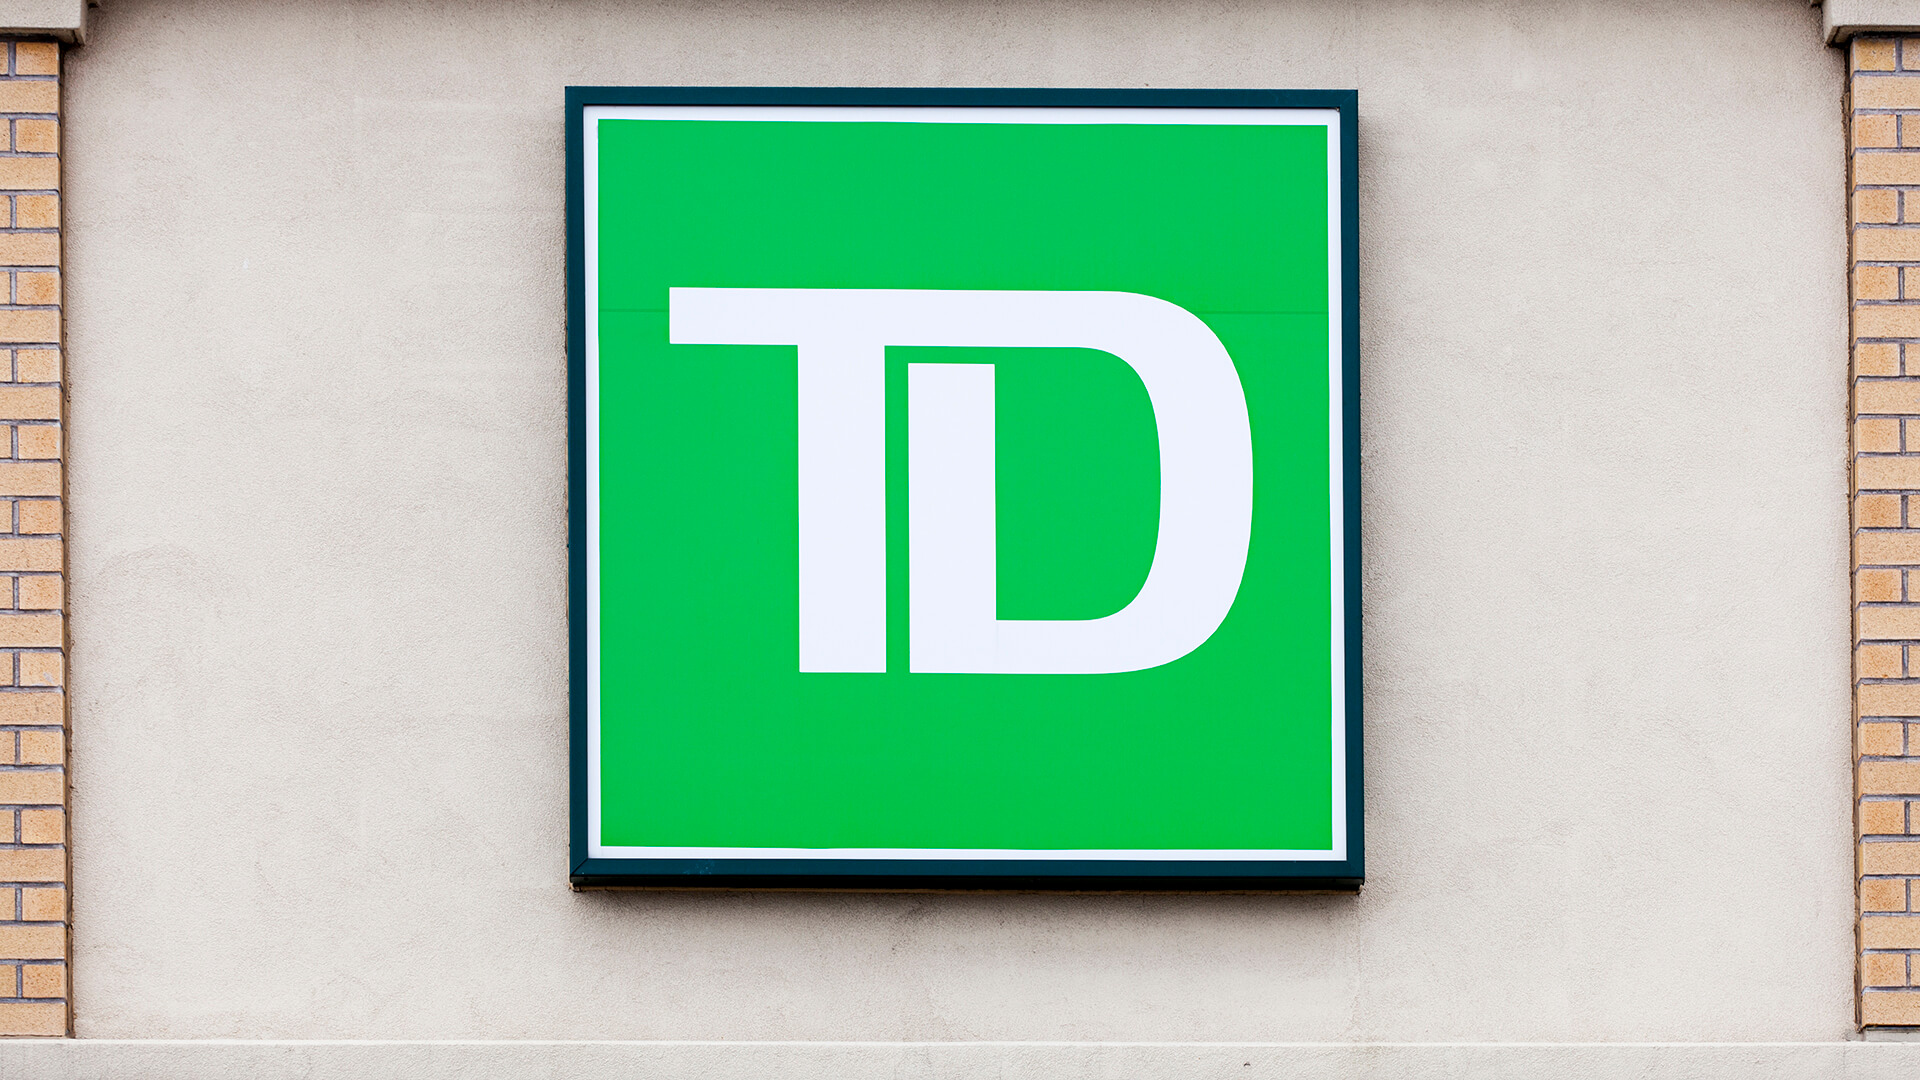 TD Bank Savings Account Review Convenient Features and Options